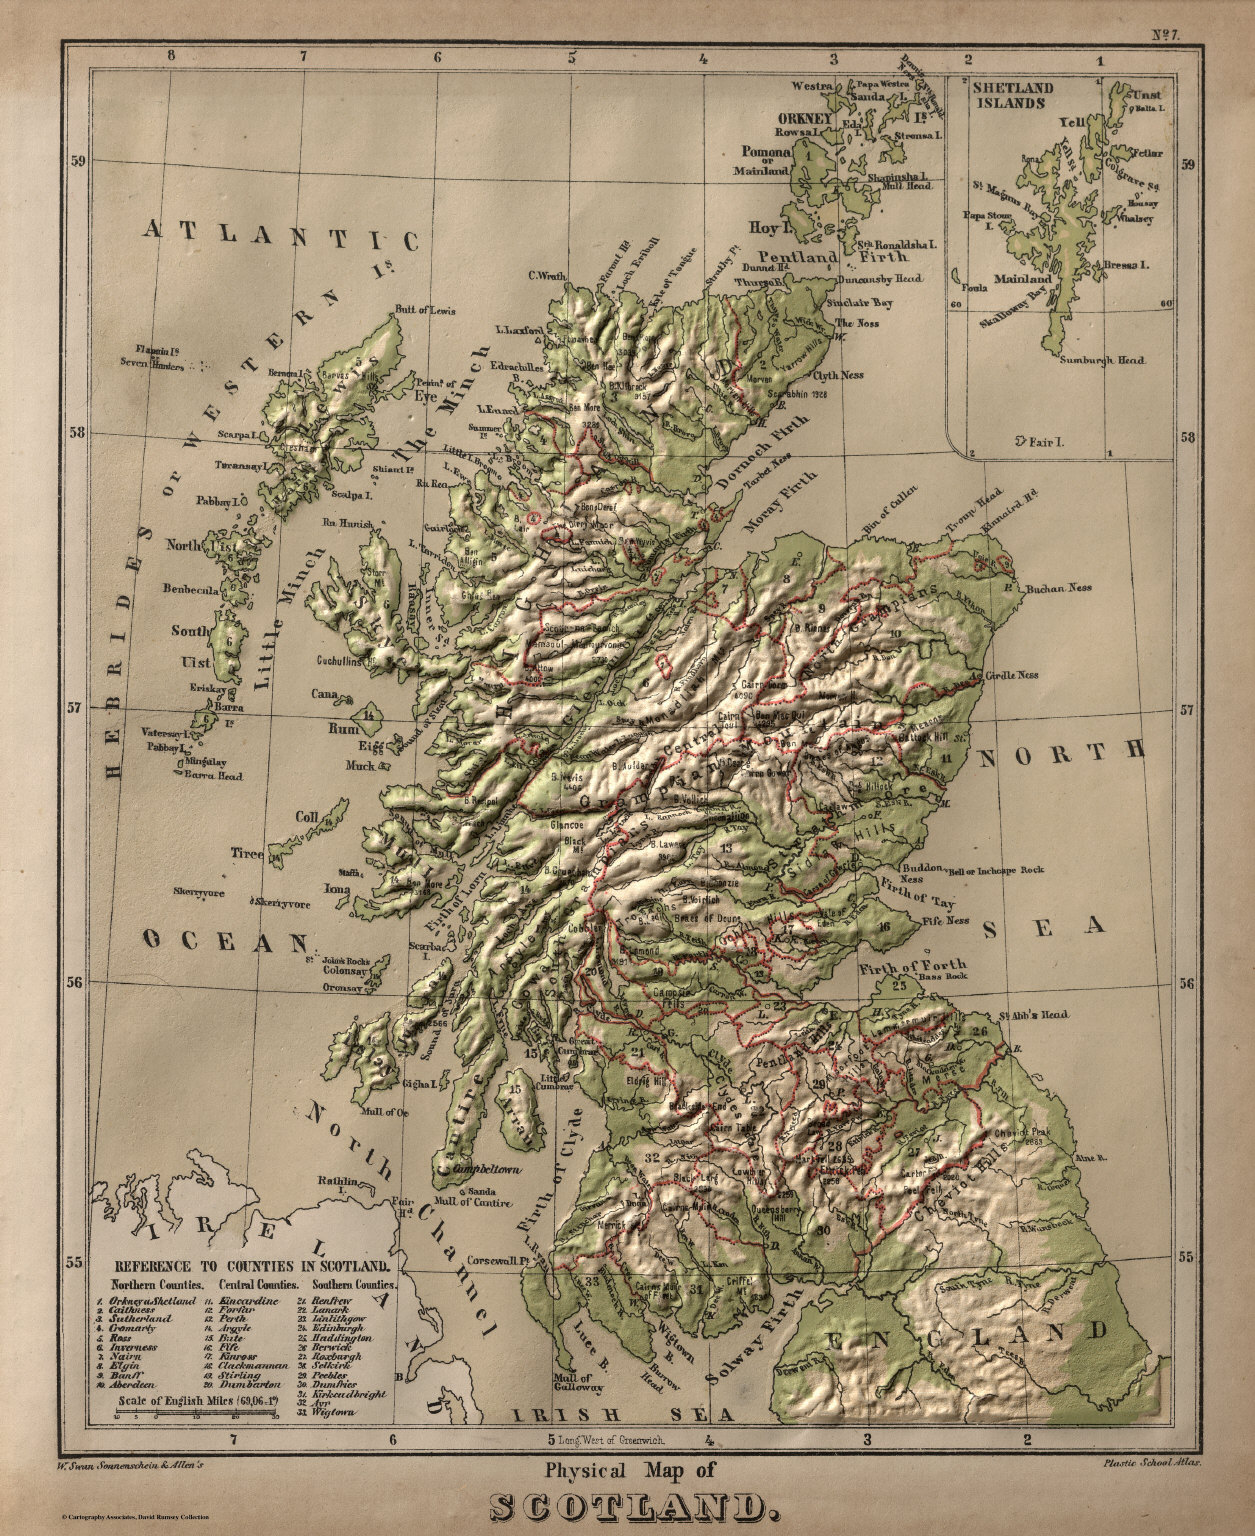 It's just a picture of Printable Map of Scotland in blank